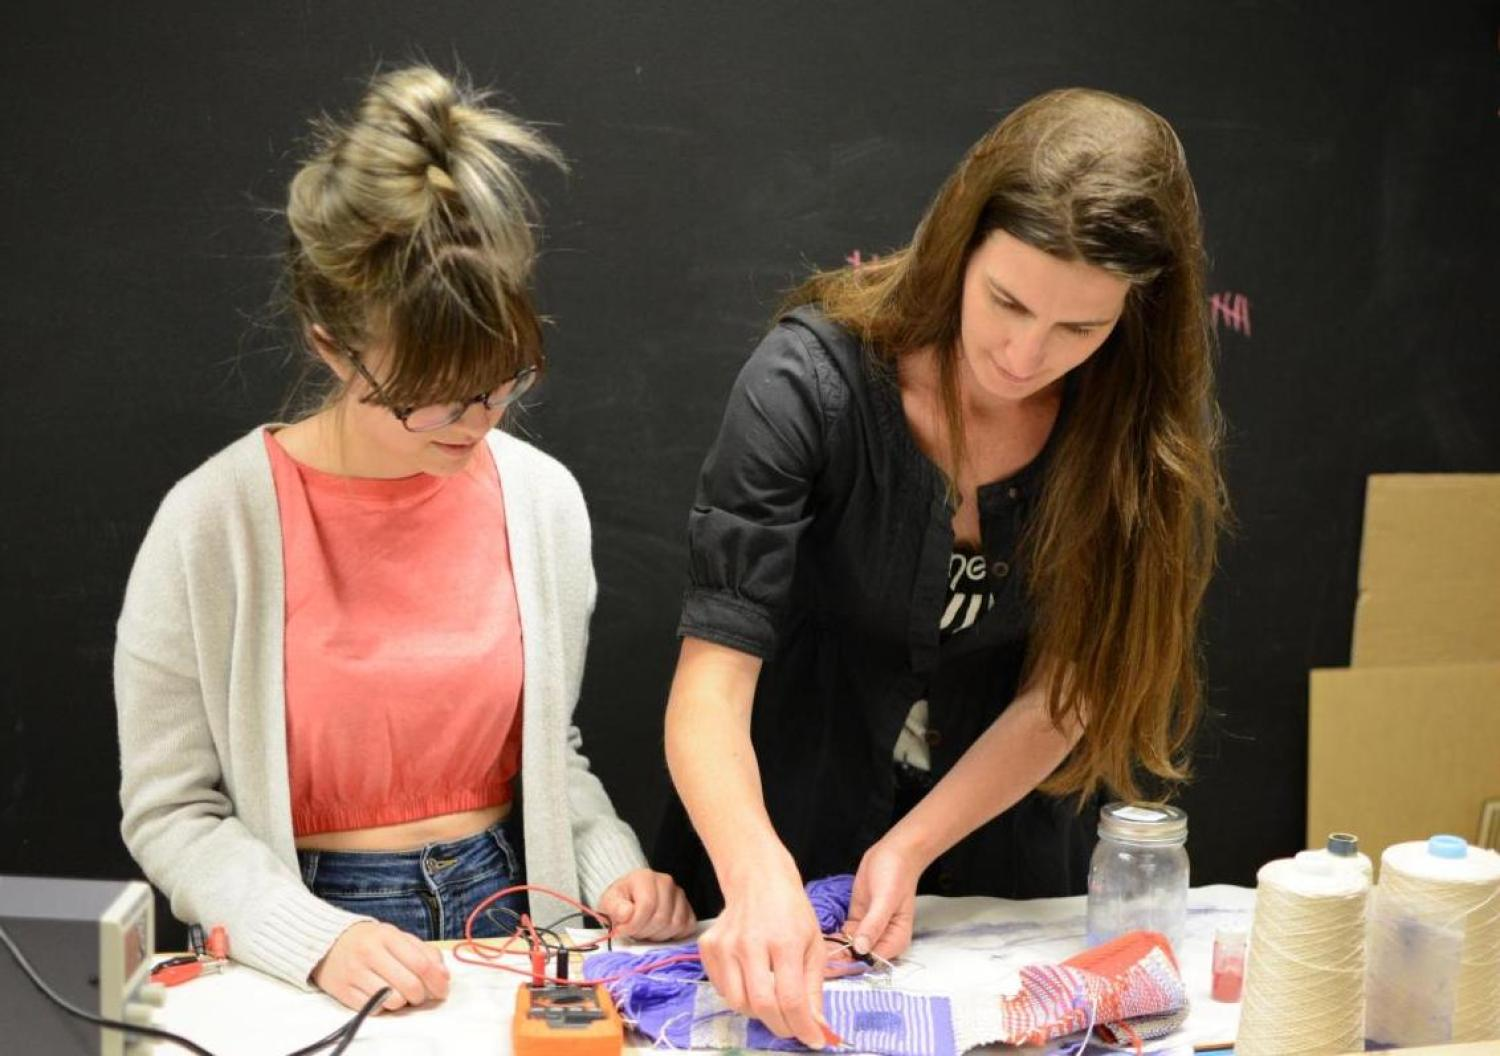 Laura Devendorf works with a lab assistant in her Unstable Design Laboratory.